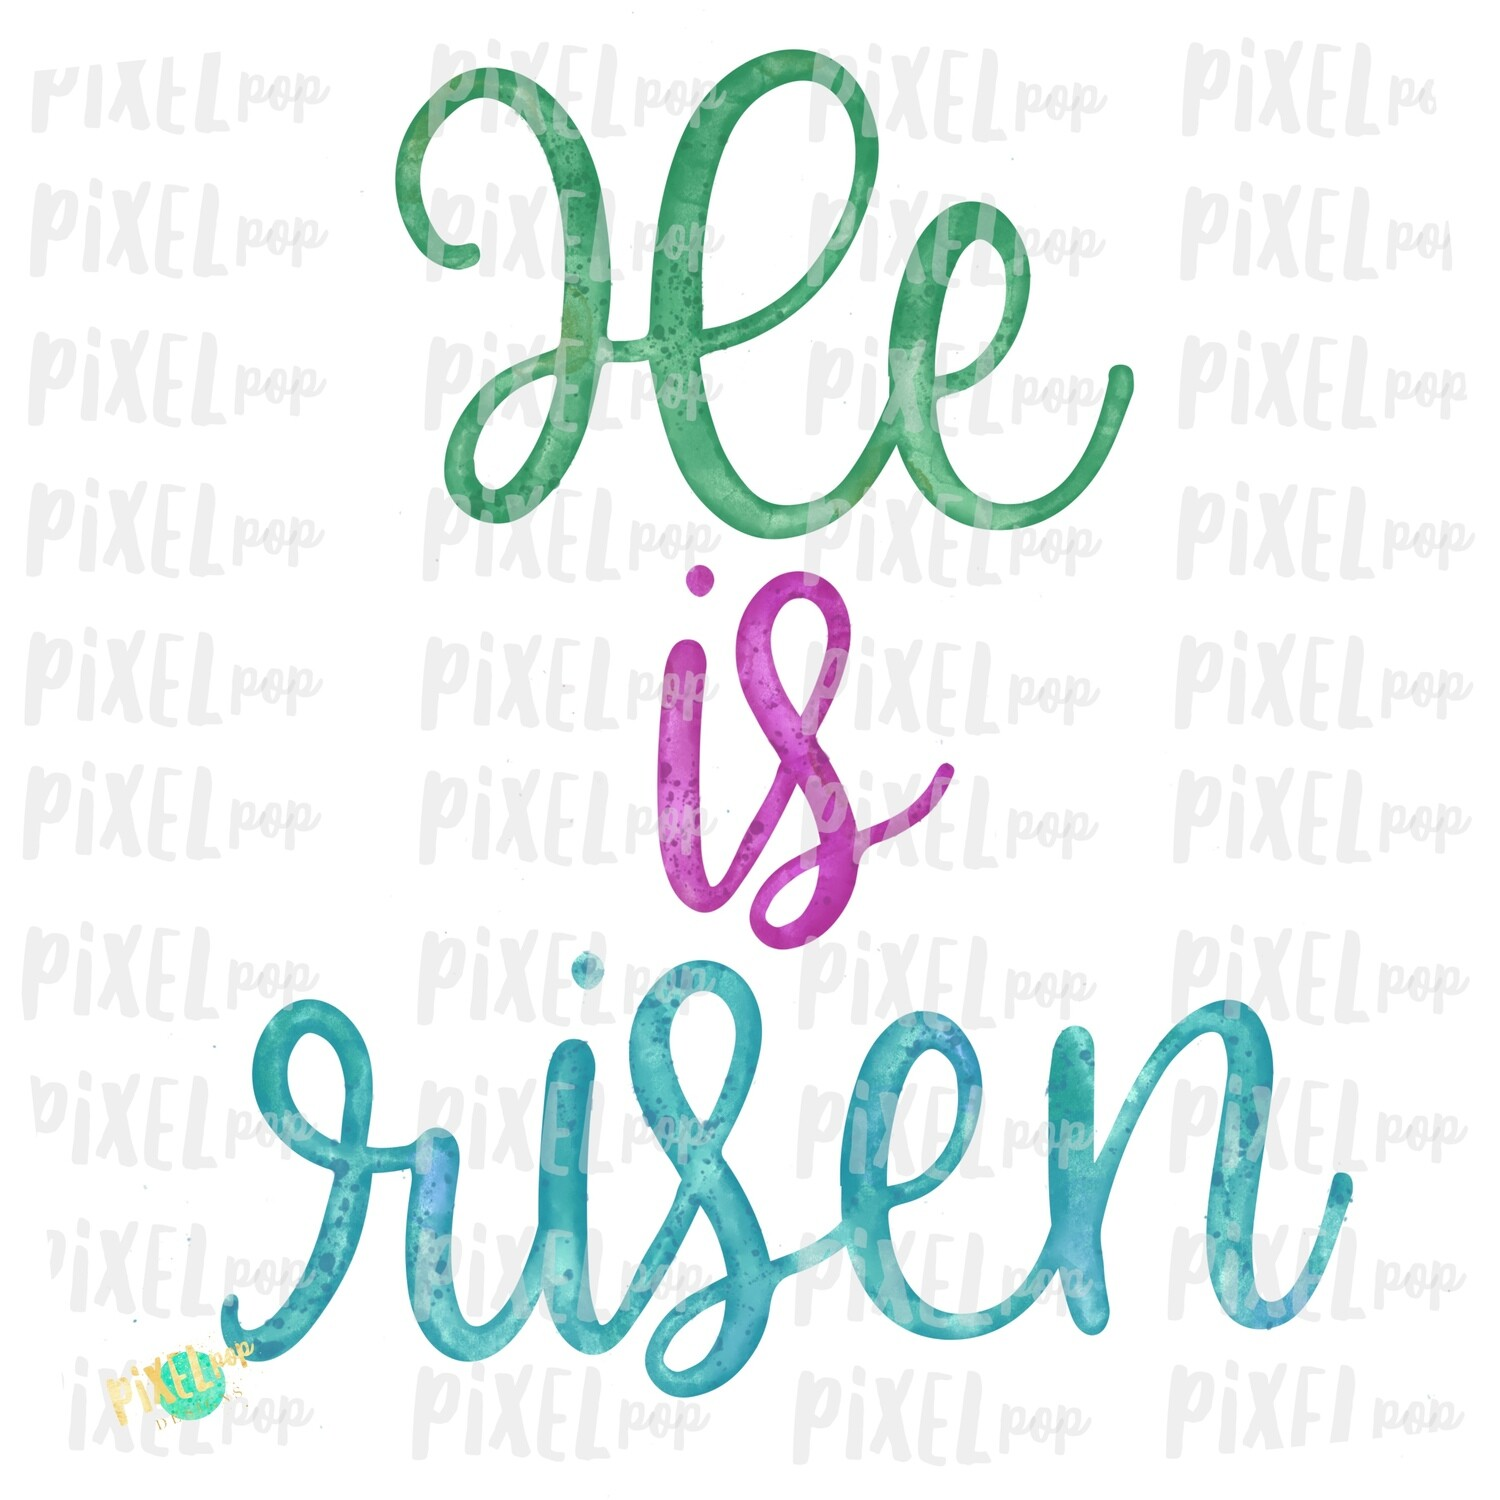 He is Risen Watercolor Script Sublimation PNG Design | Hand Drawn Painted Design | Sublimation PNG | Digital Download | Printable Artwork